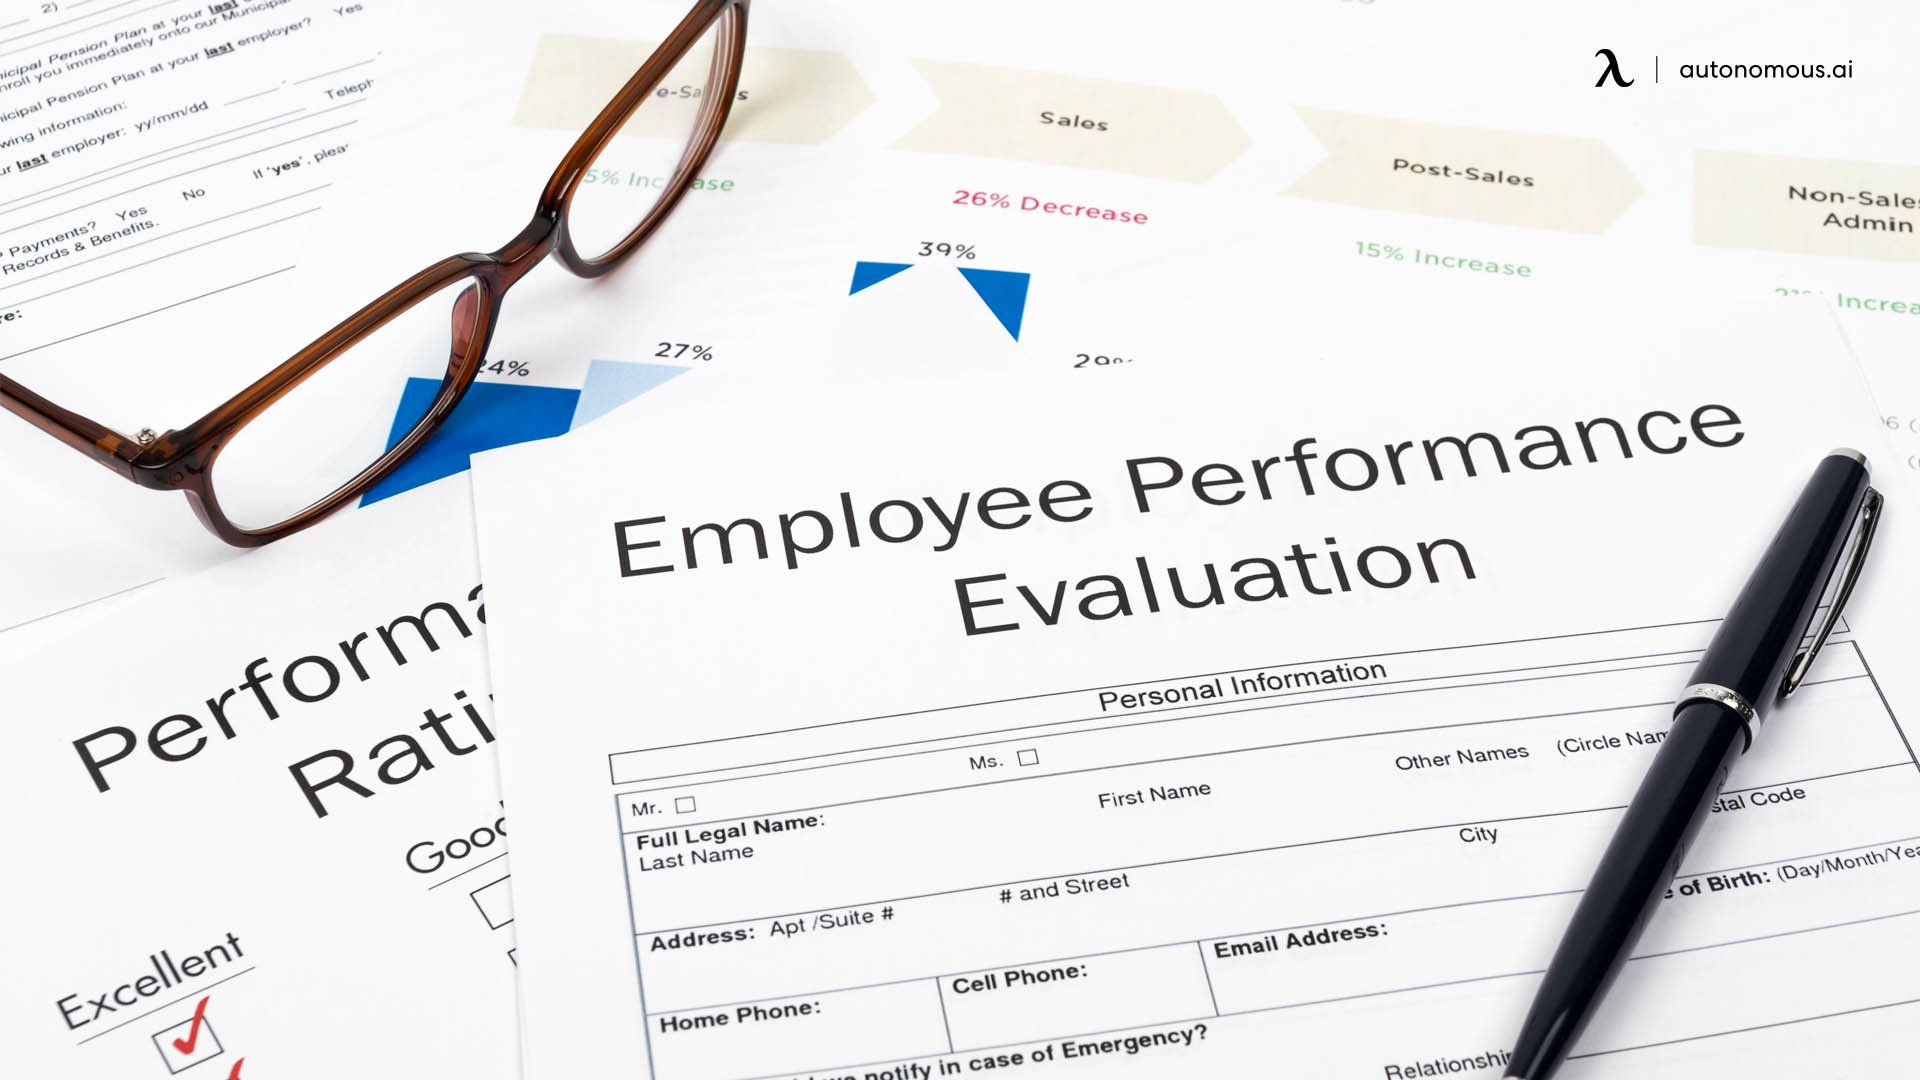 What are the effects of performance evaluation?